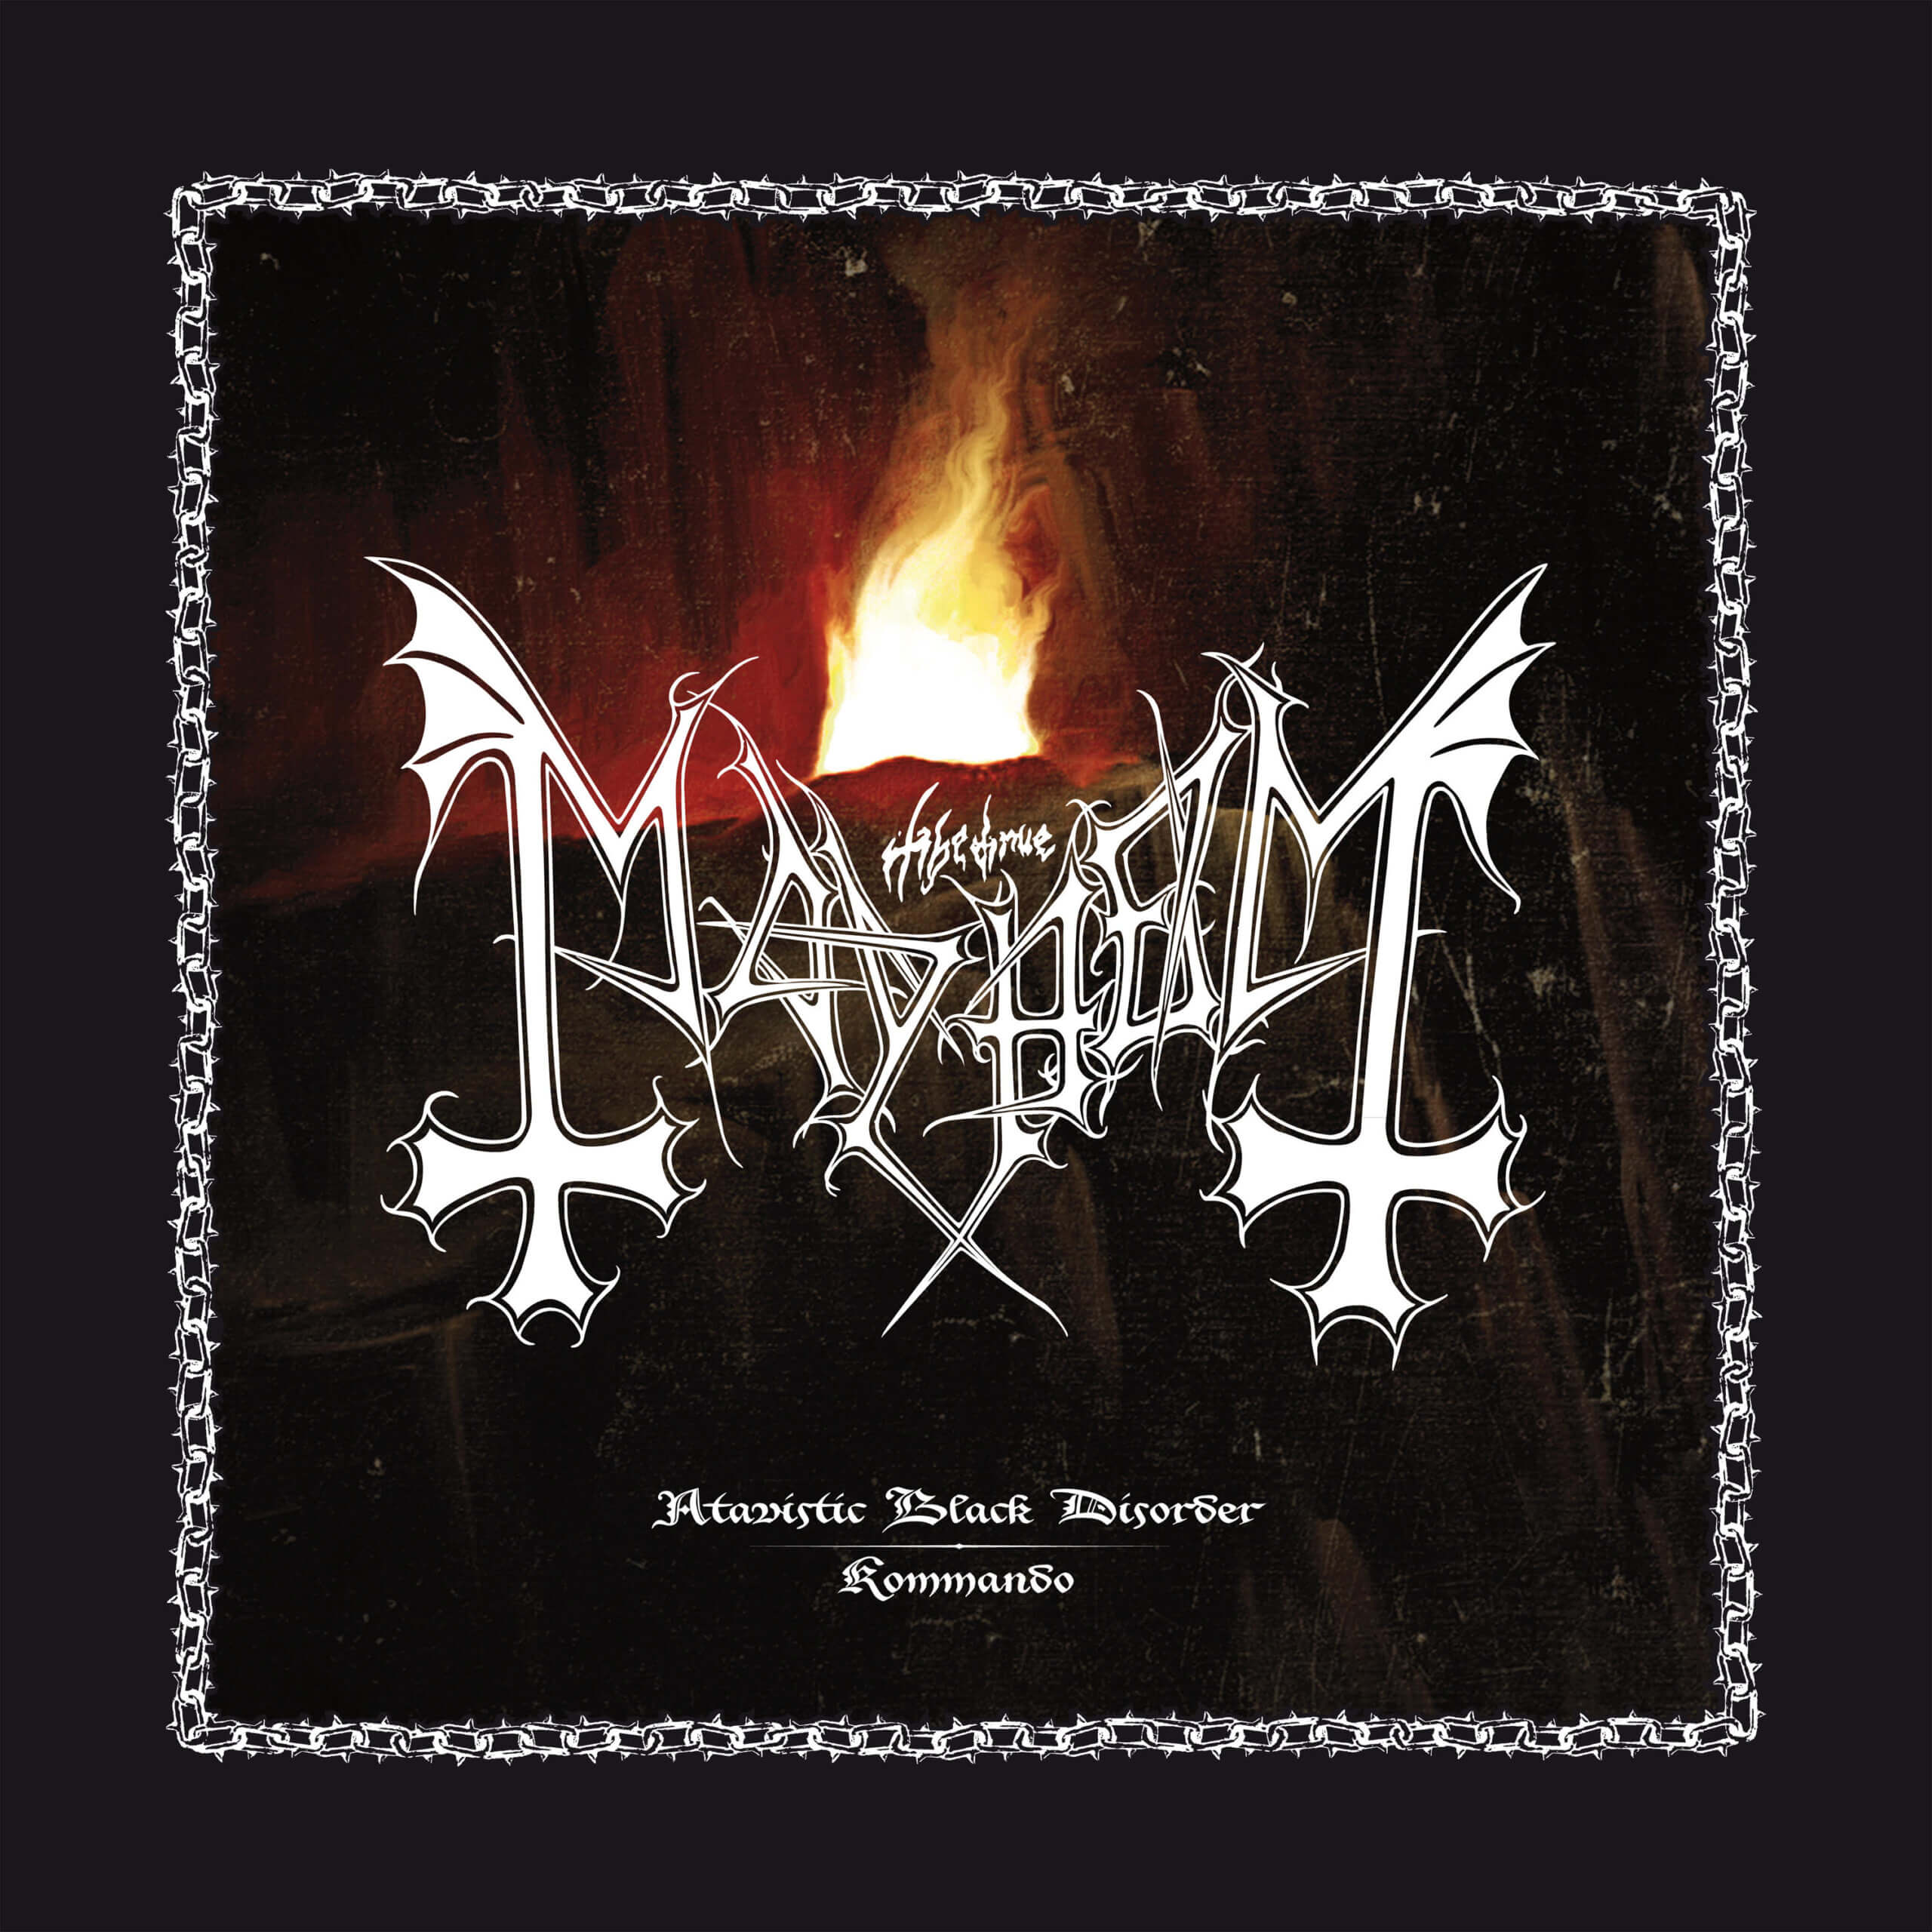 Atavistic Black Disorder/Kommando by Mayhem album review by Jahmeel Russell for Northern Transmissions